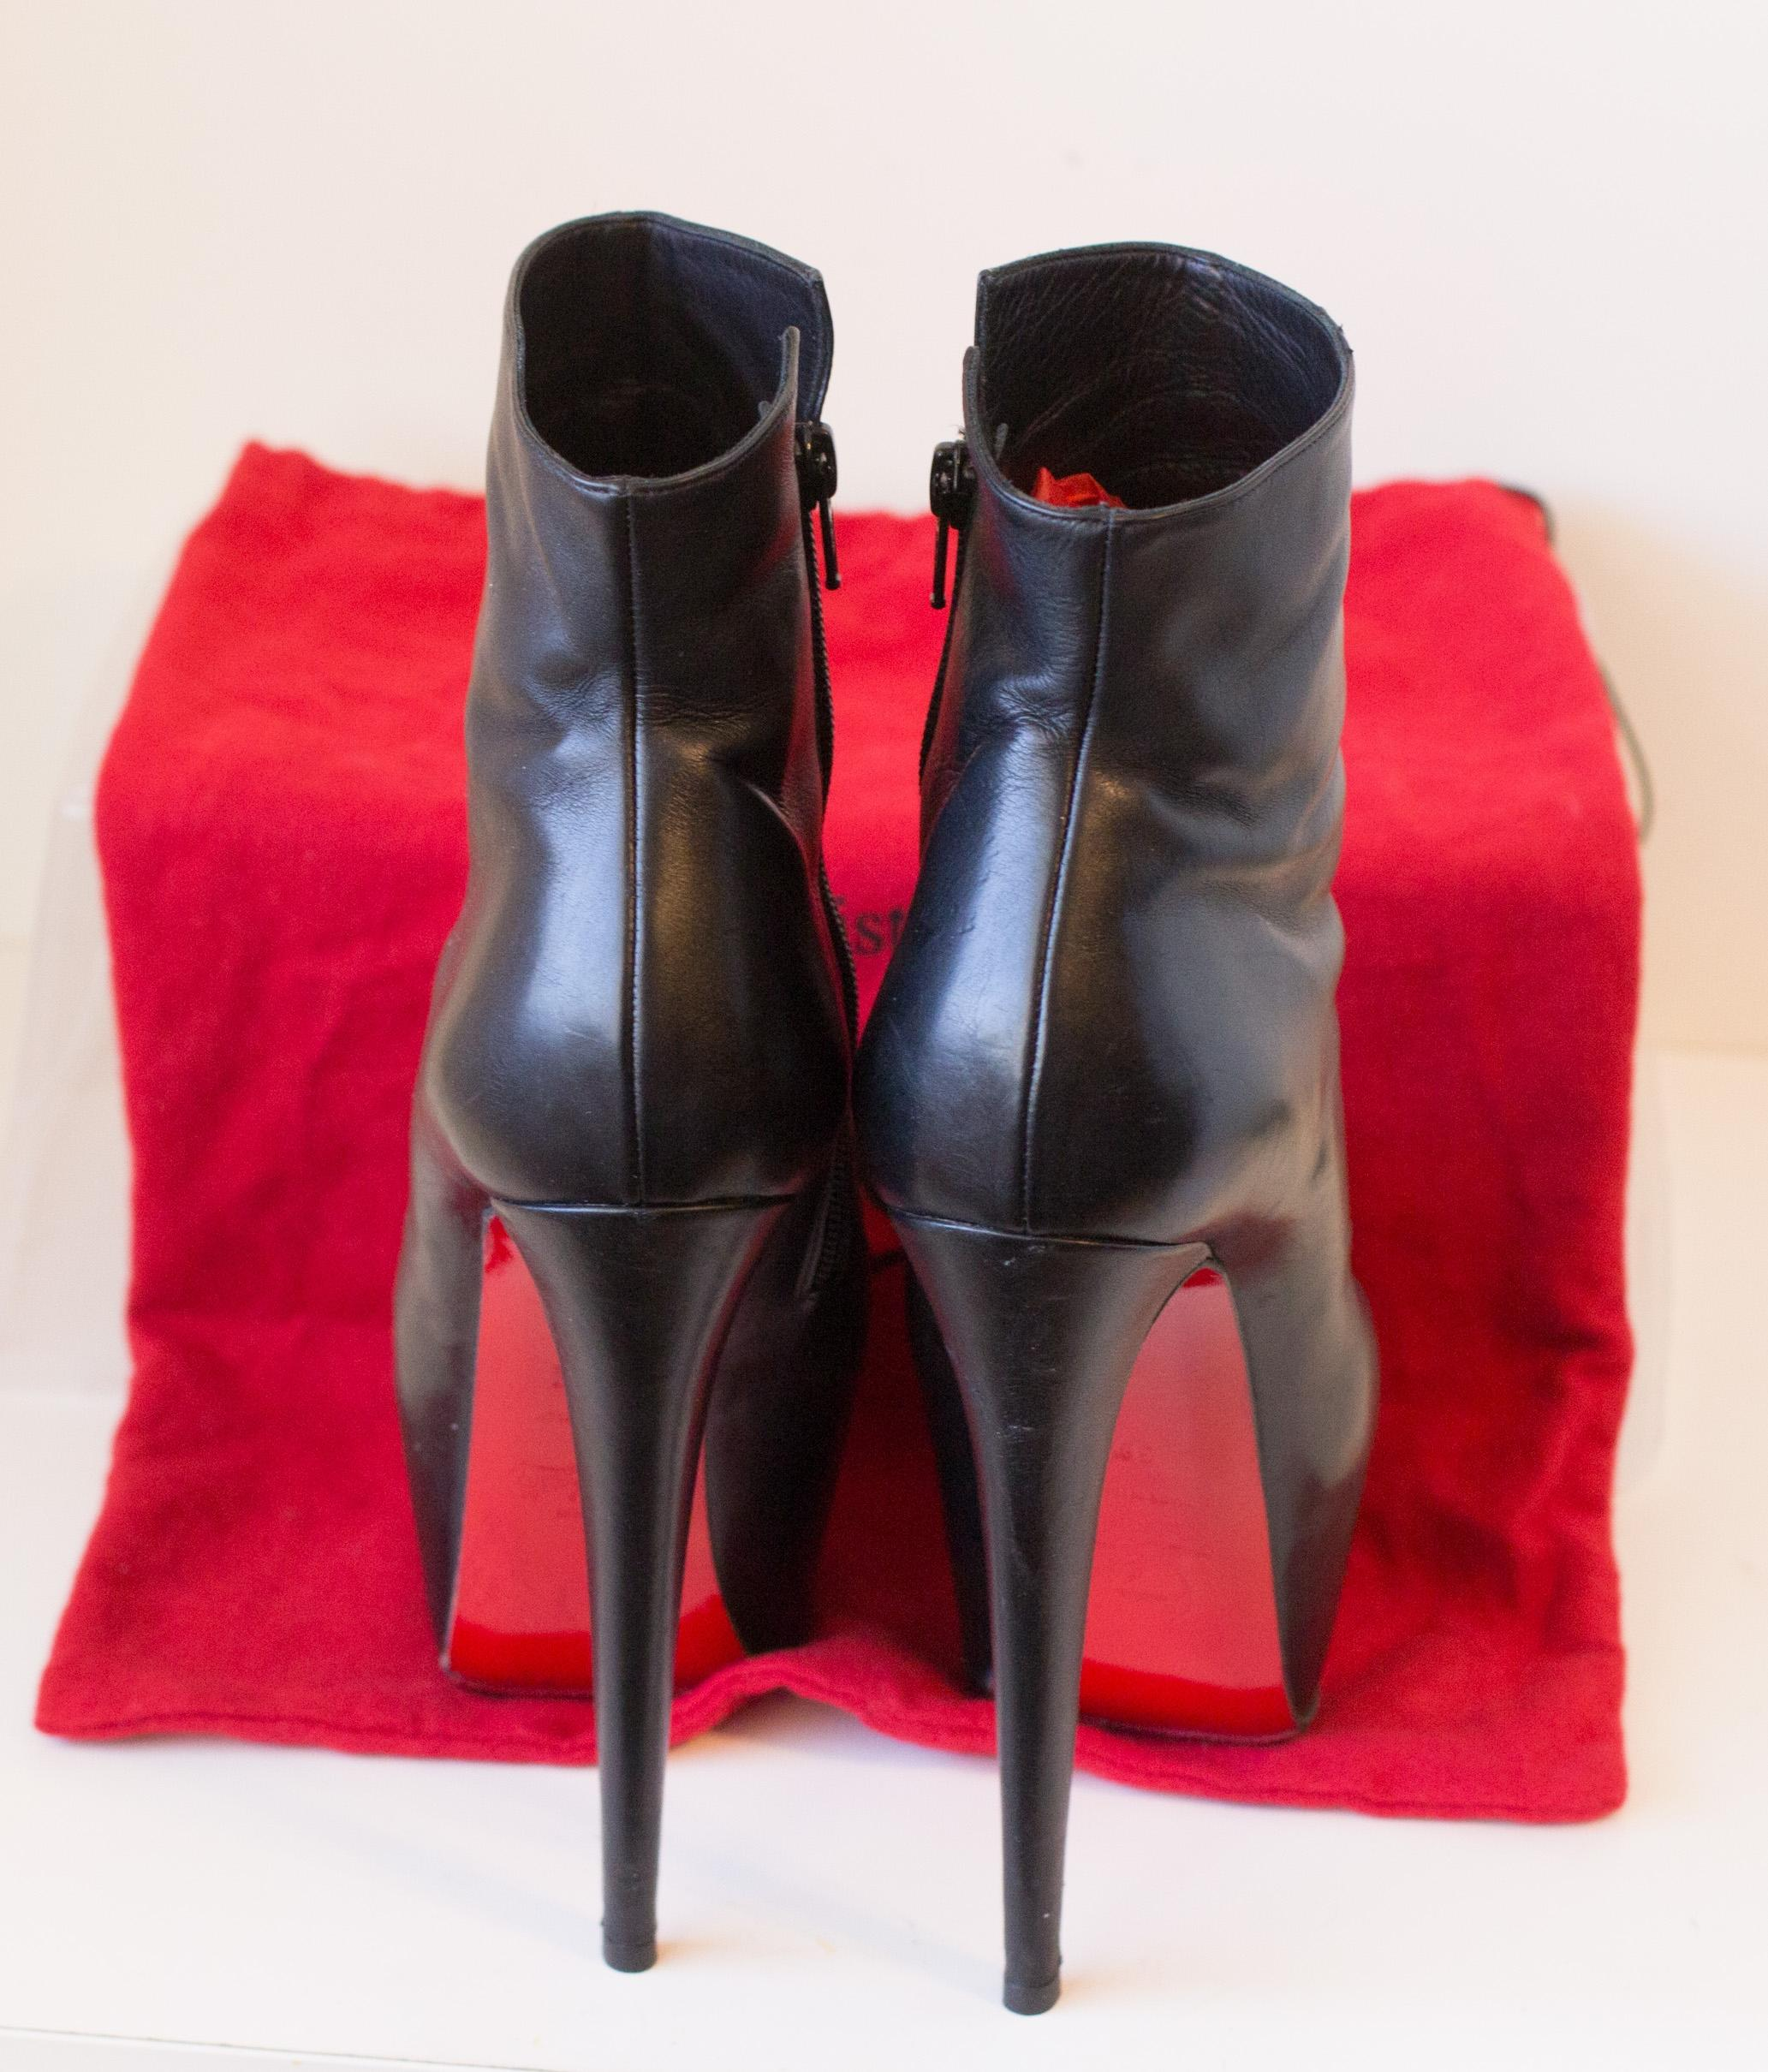 36580607b3a9 ... Christian Louboutin Daf Booty Black Leather Ankle Ankle Ankle Boots  Pumps Size EU 38.5 (Approx ...